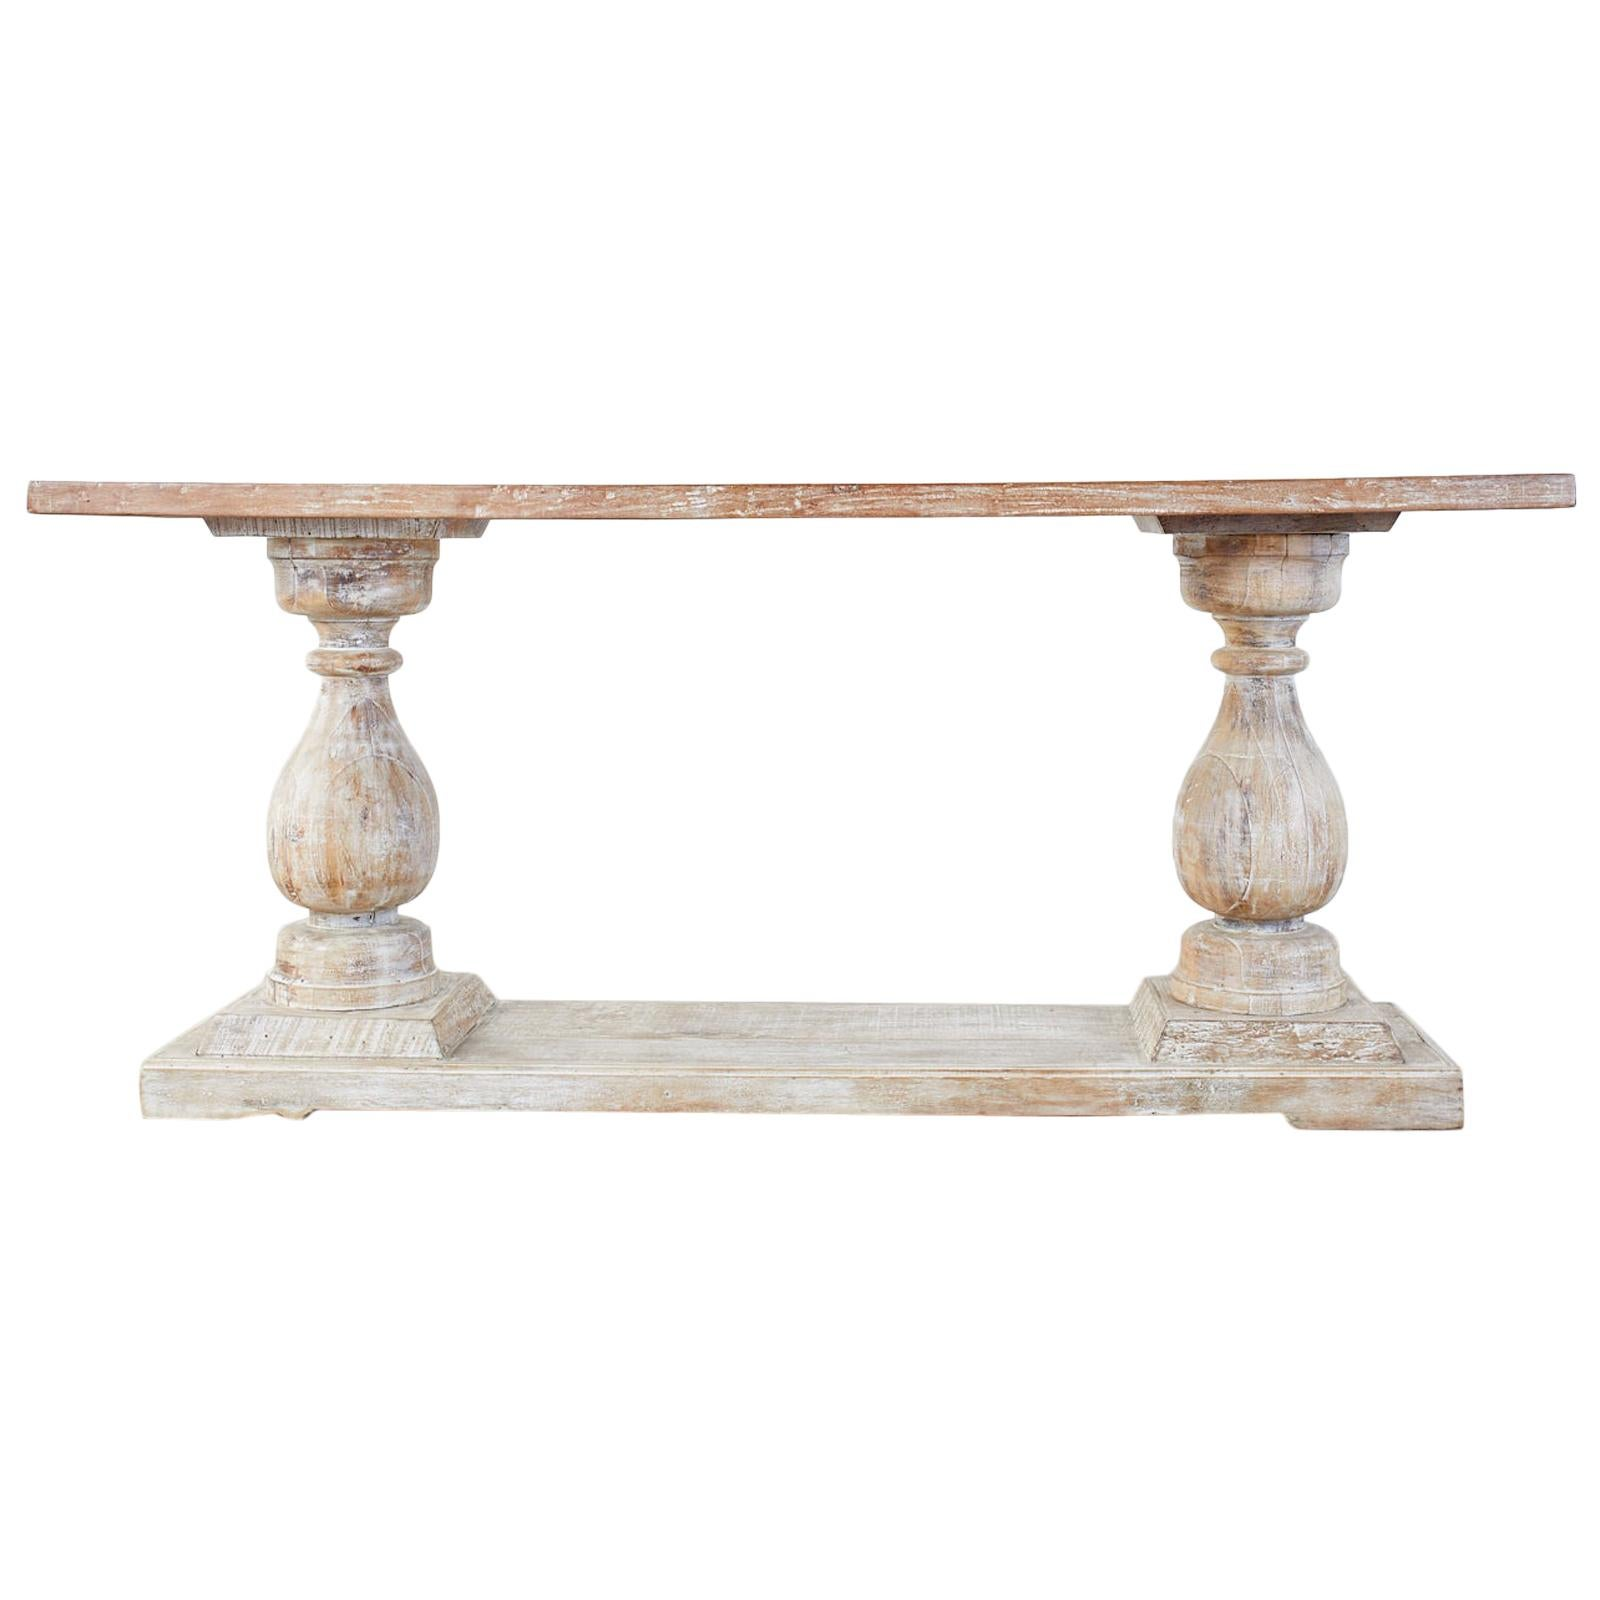 Palladian Style Cerused Oak Baluster Sofa or Console Table